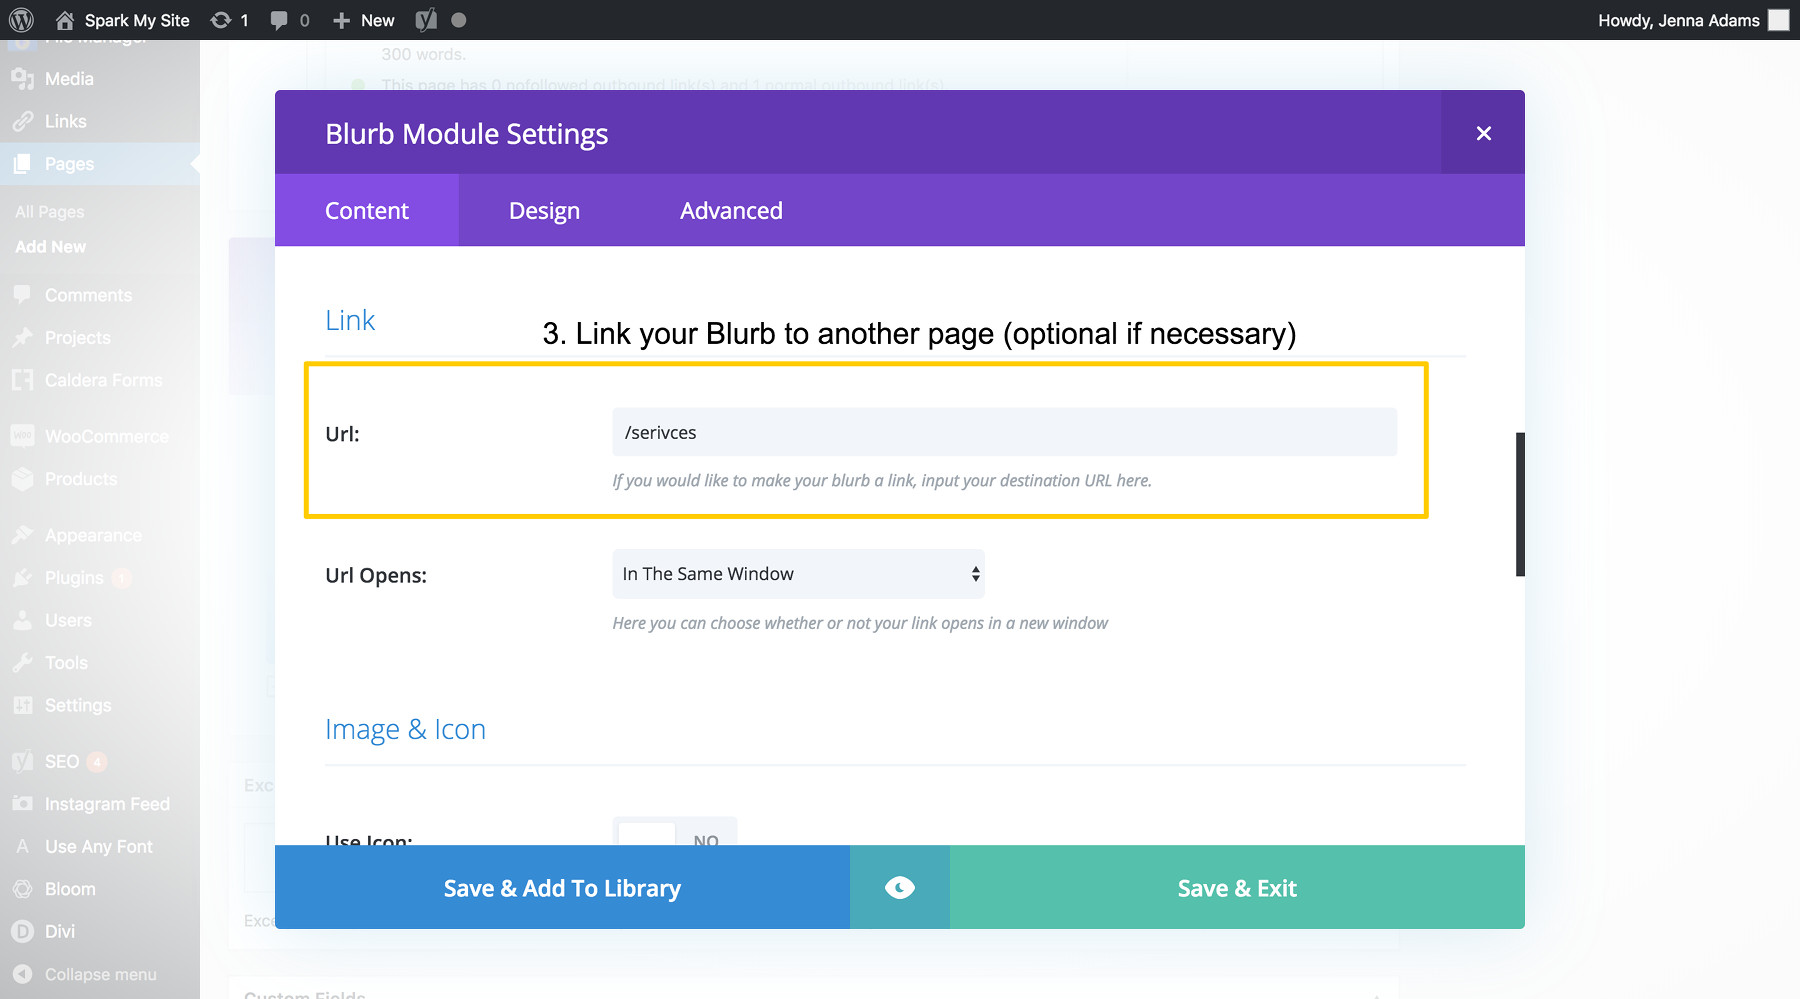 Divi Tutorials: How to Use the Blurb Module - Spark My Site